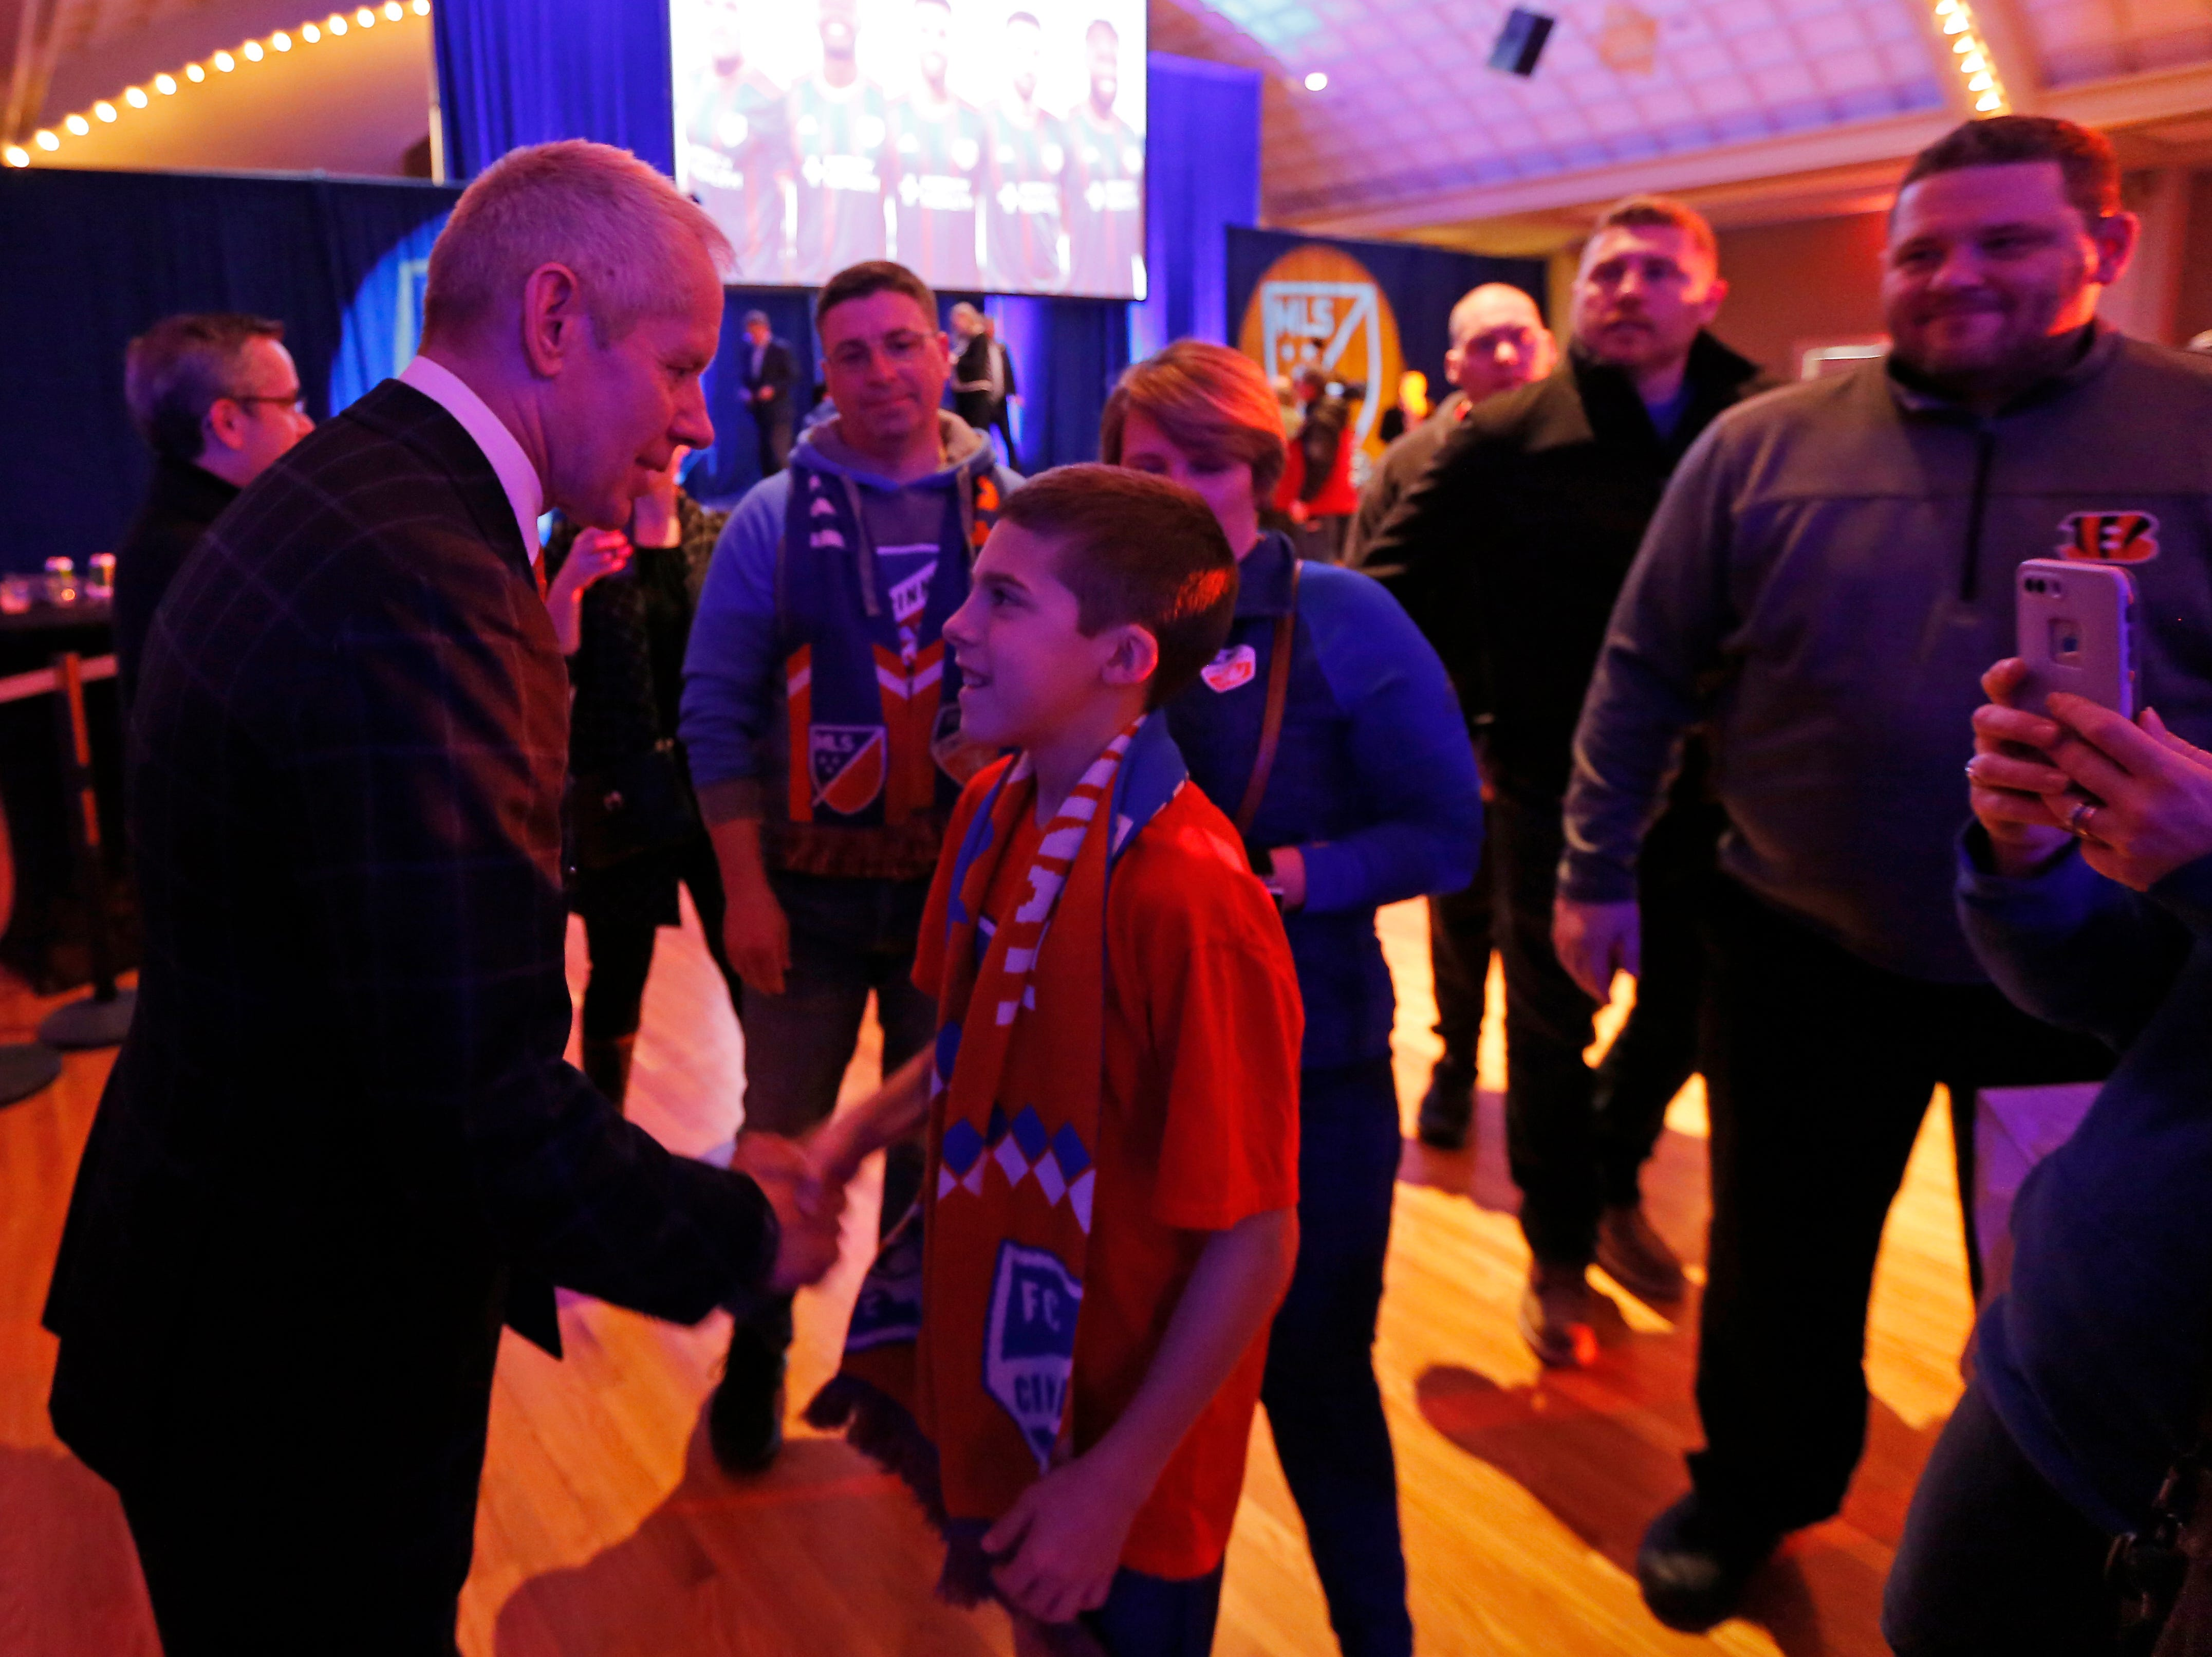 Team owner Carl Lindner III shakes hands with Gaven Johnson, 12, of Harrison, during an event to unveil FC Cincinnati's jersey for the team's inaugural season in Major League Soccer at the Music Hall Ballroom in the Over-the-Rhine neighborhood of Cincinnati on Monday, Feb. 11, 2019.